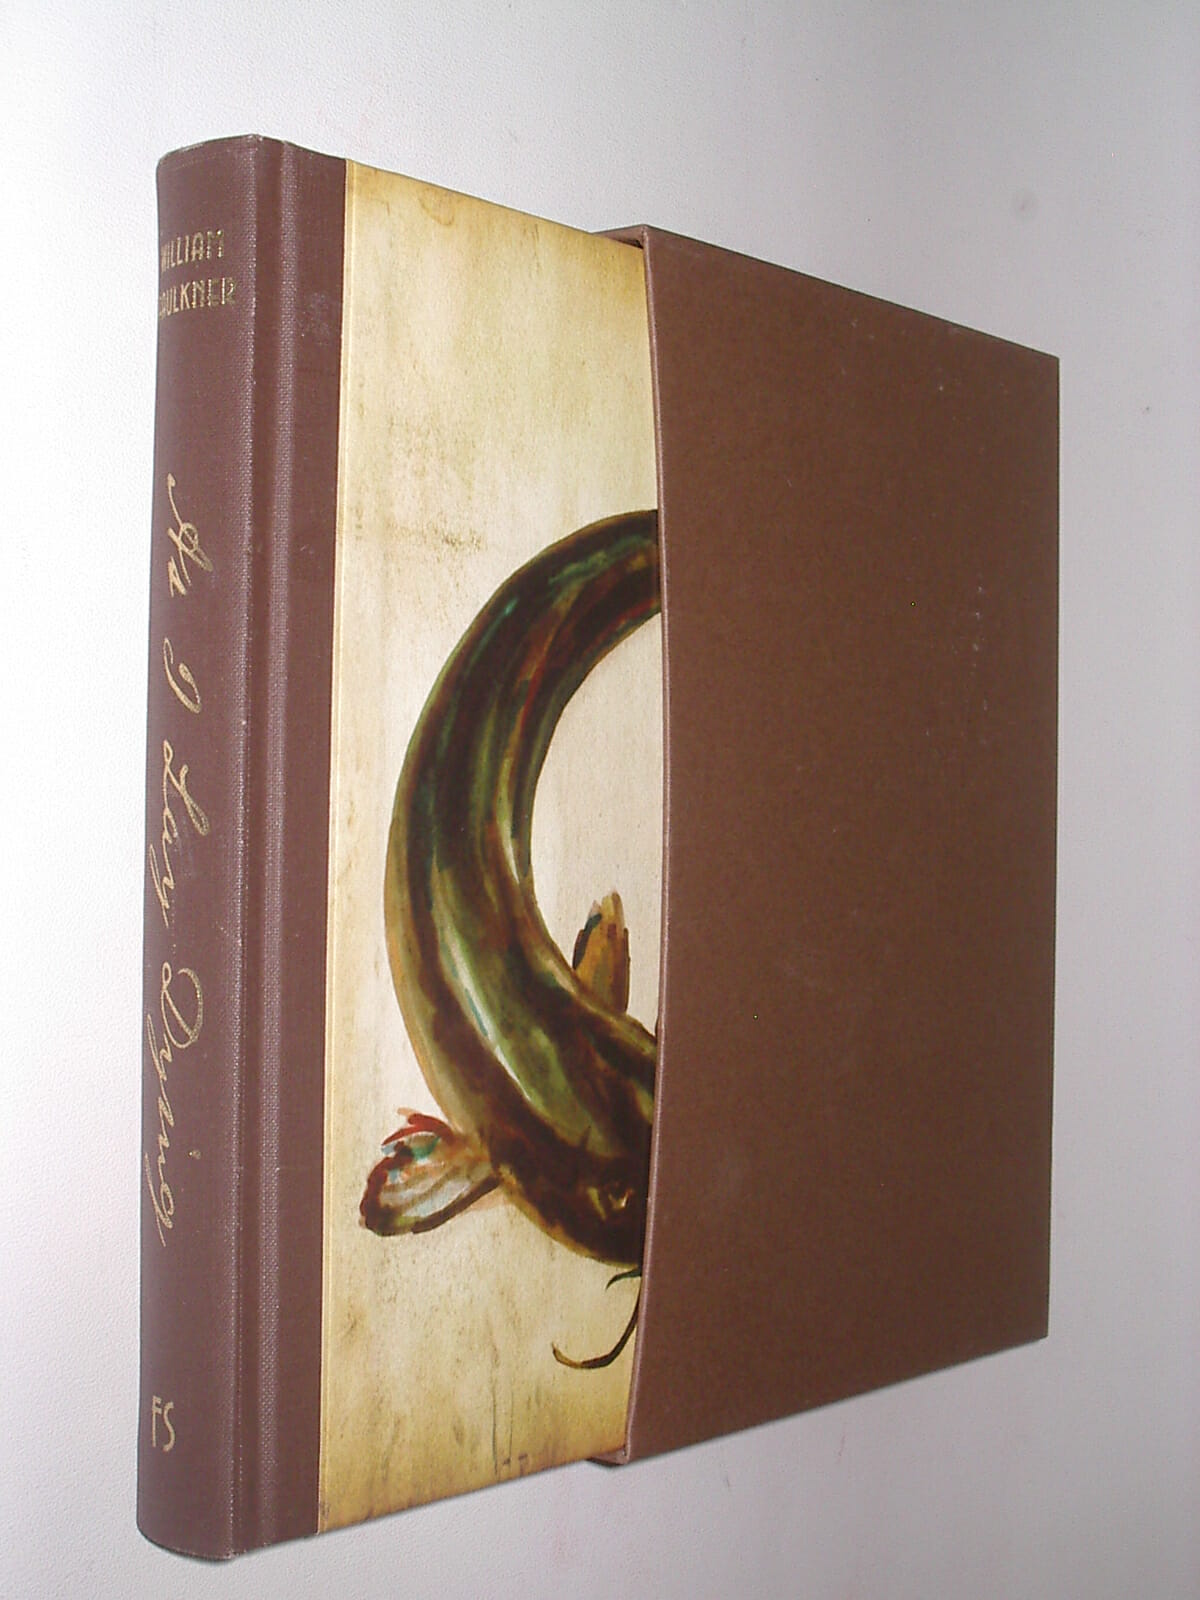 La edición de «Mientras agonizo» de Folio Society con prefacio de William Gay.